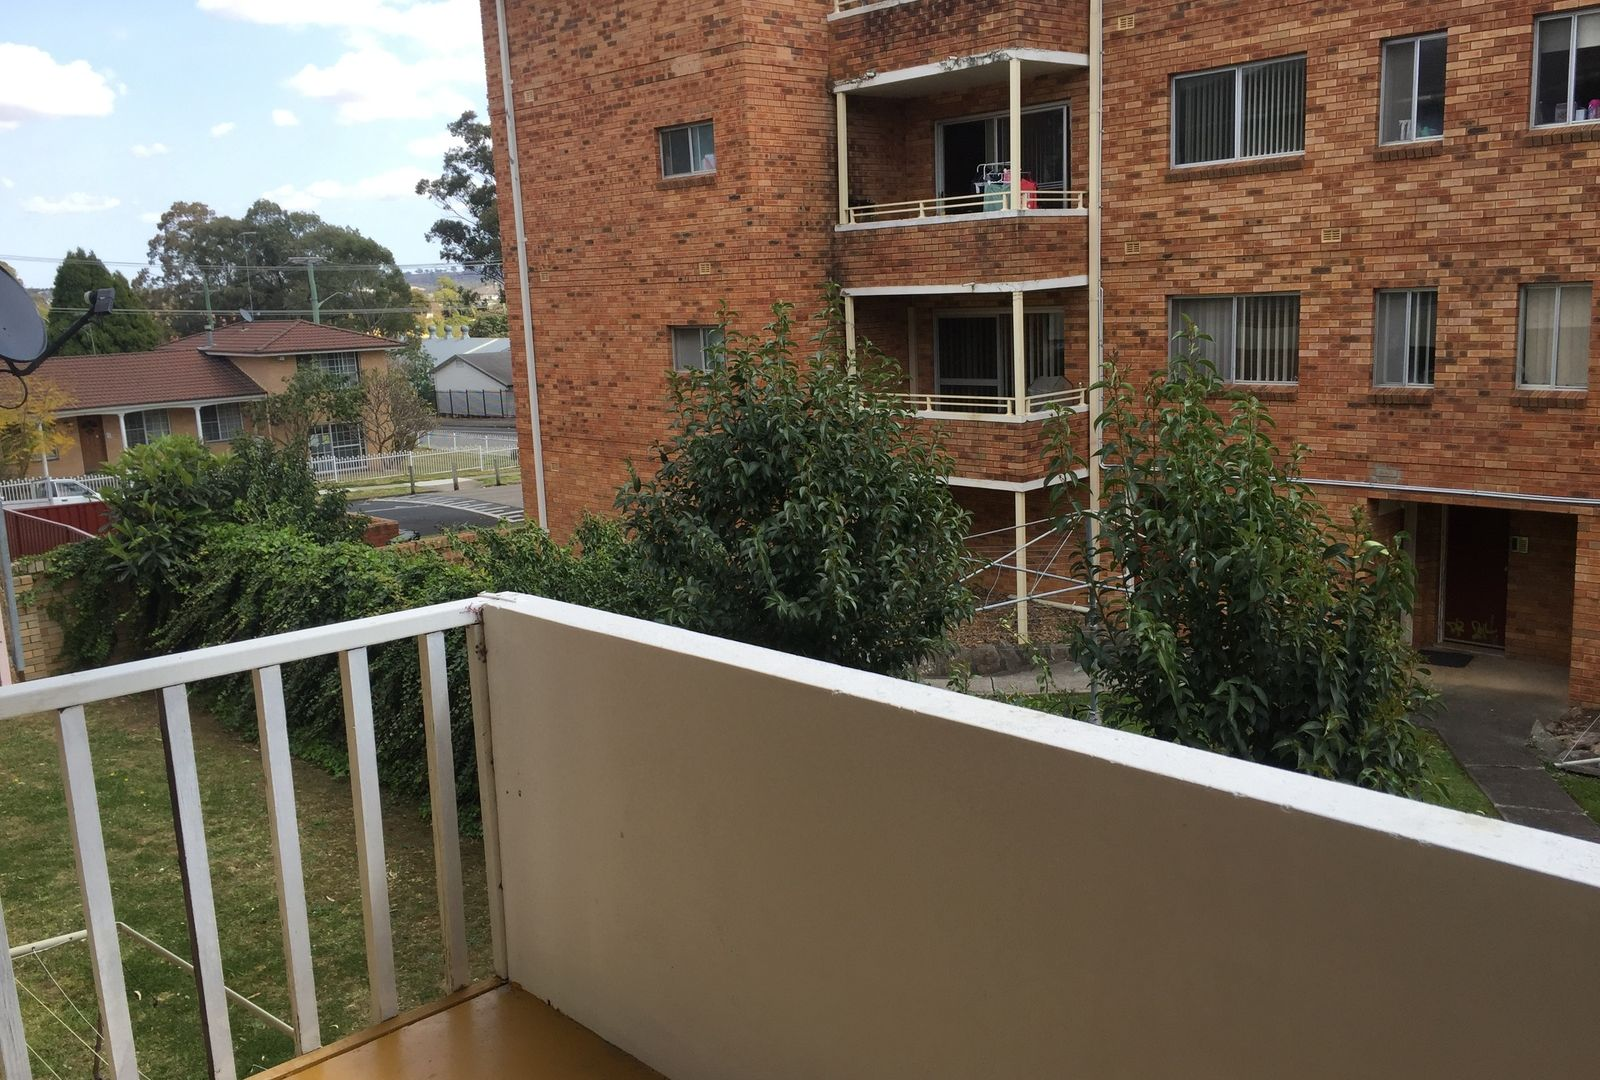 6/60 Lithgow Street, Campbelltown NSW 2560, Image 4